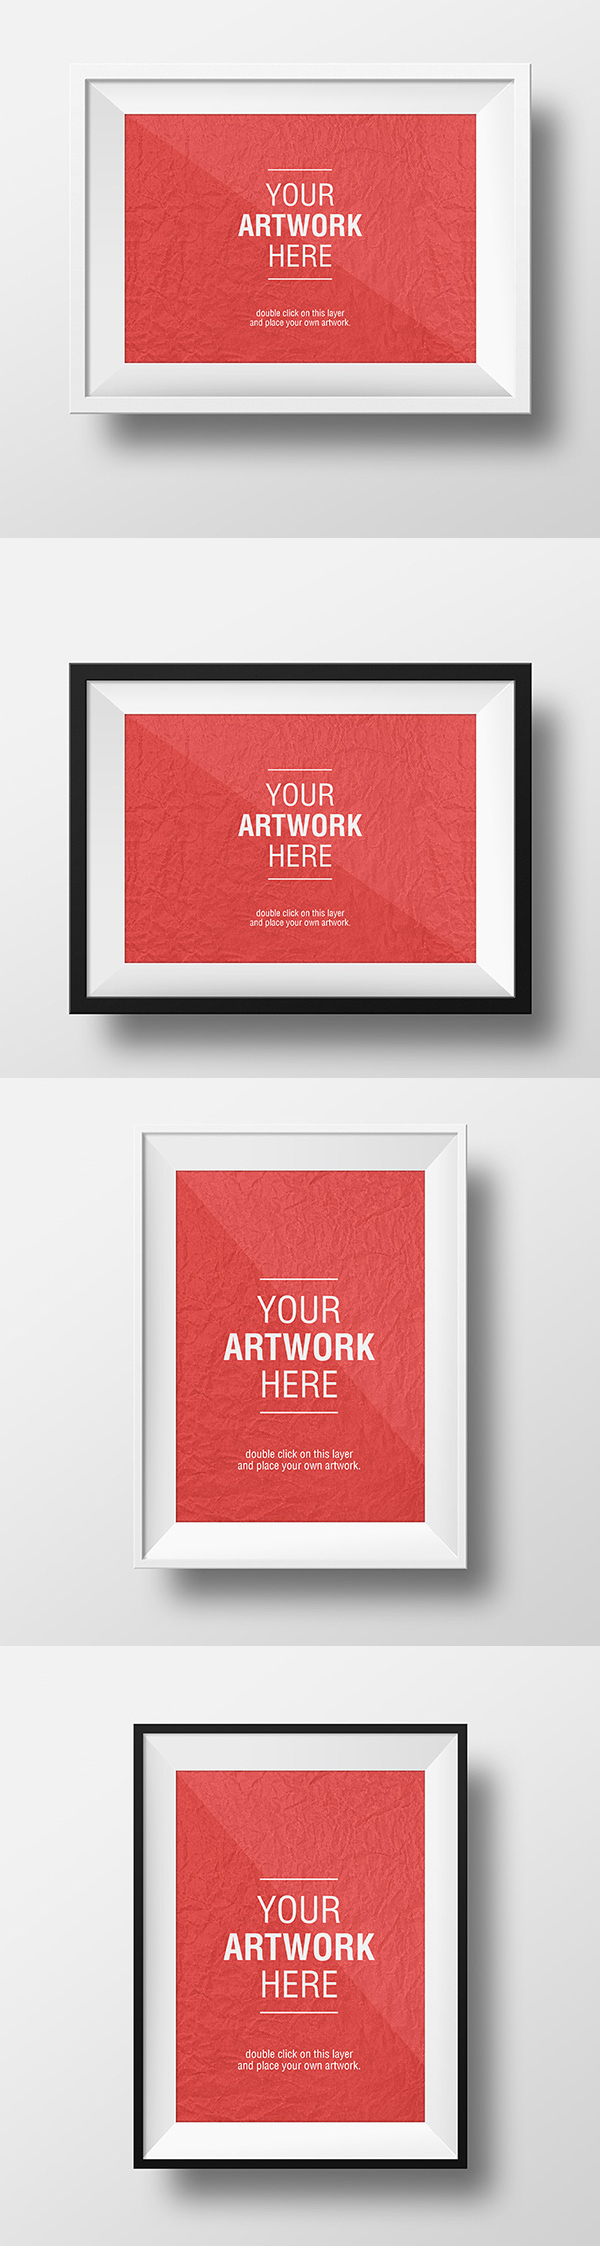 6 poster design photo mockups - 140 Free Psd Poster Flyer Mock Up Templates Page 5 Of 6